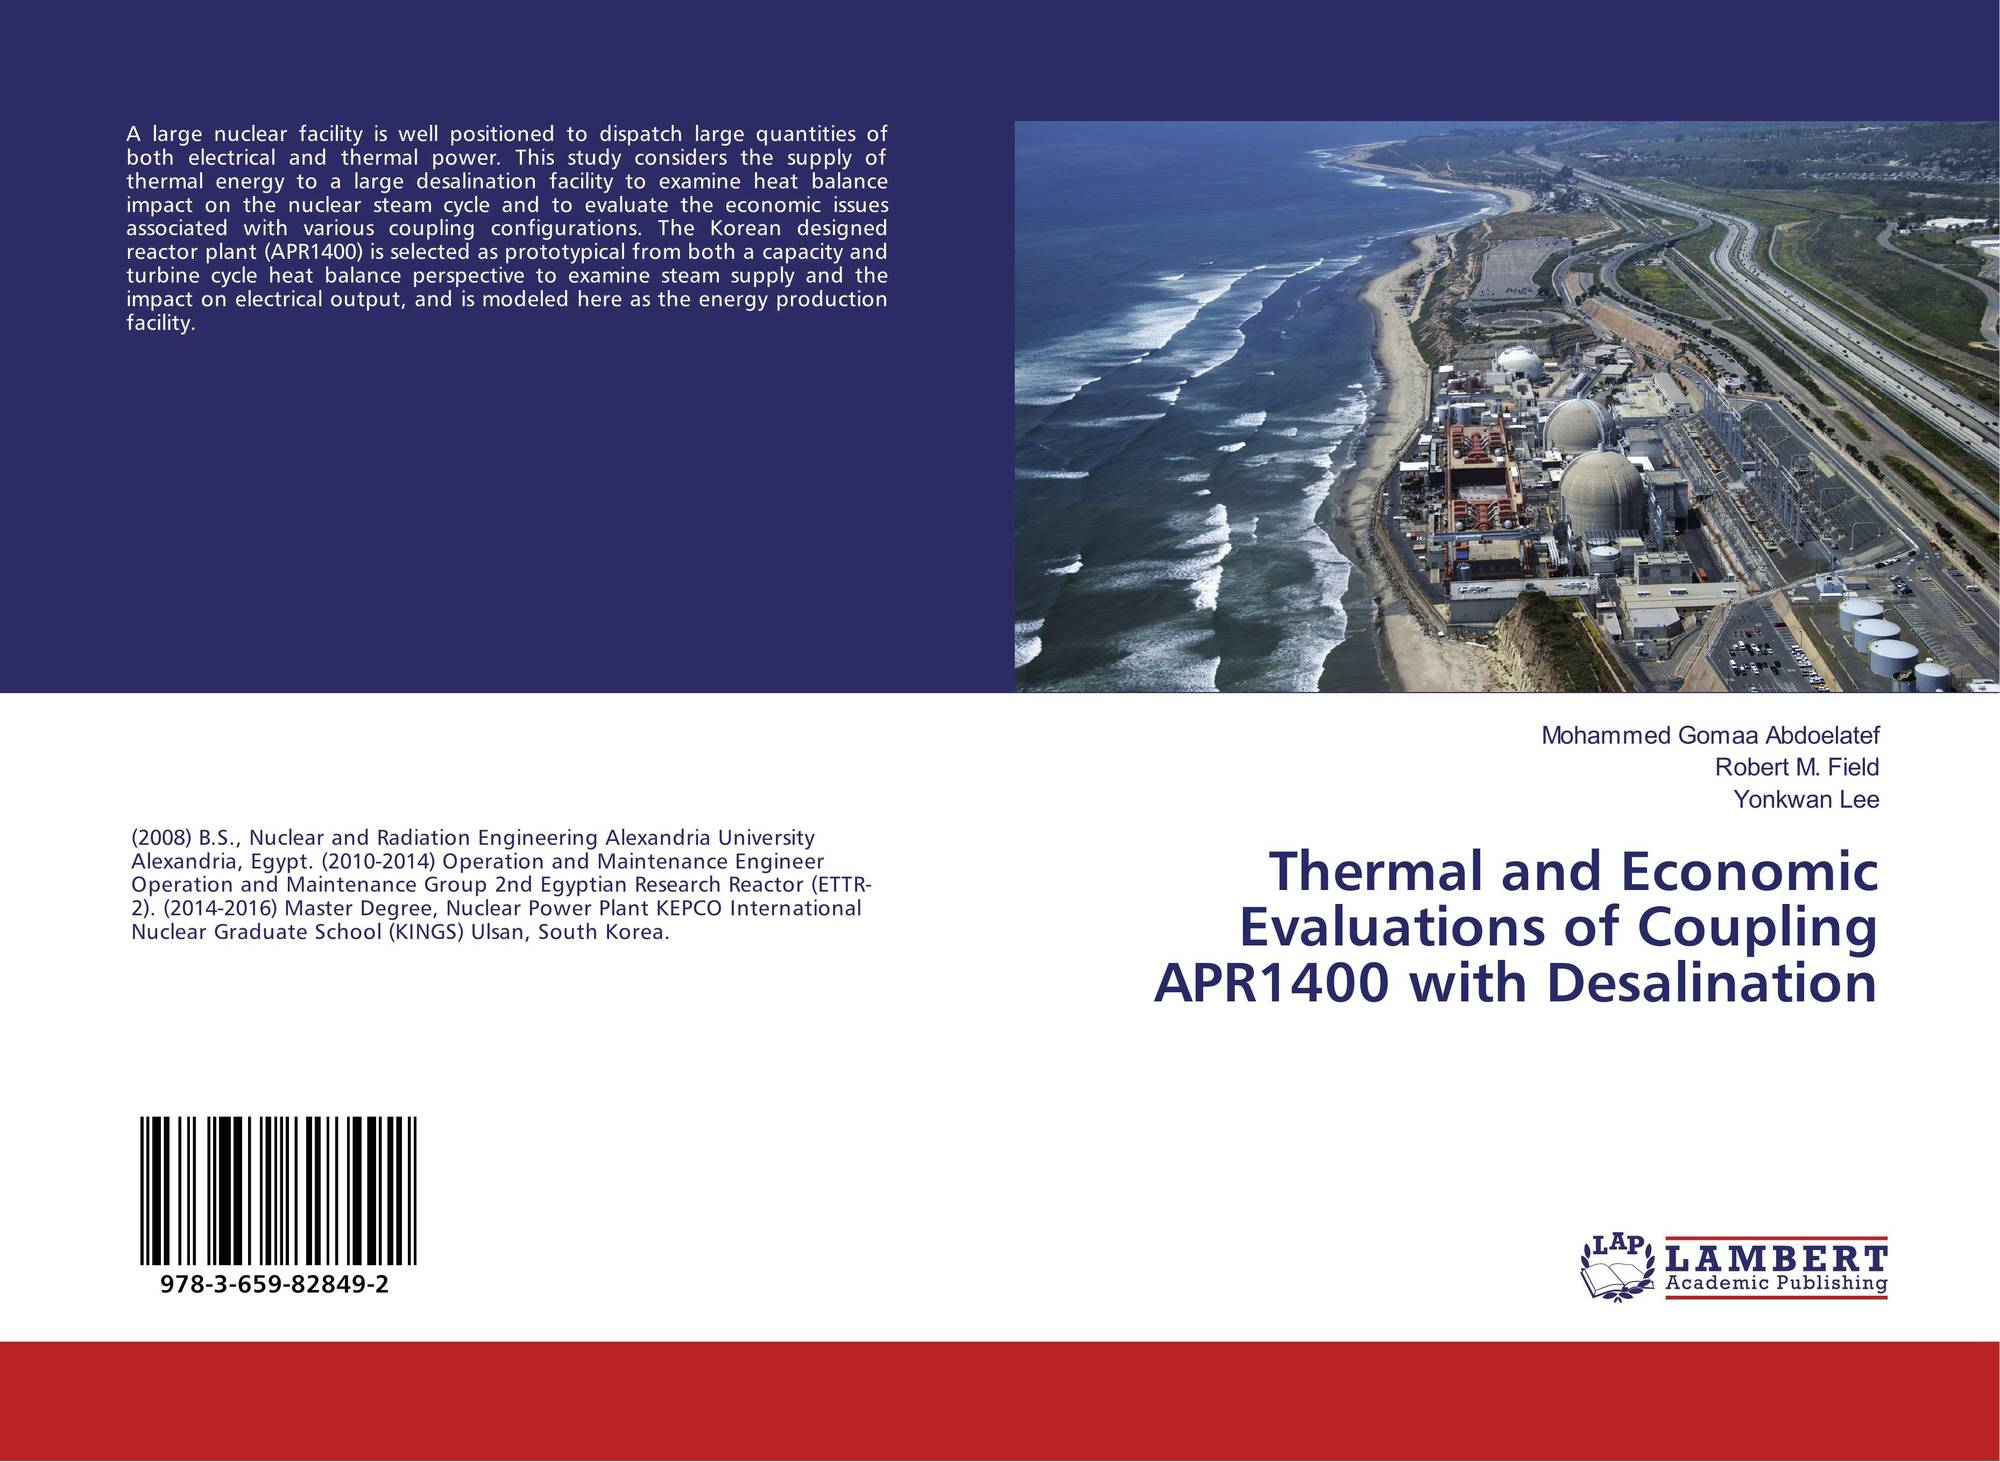 Thermal and Economic Evaluations of Coupling APR1400 with